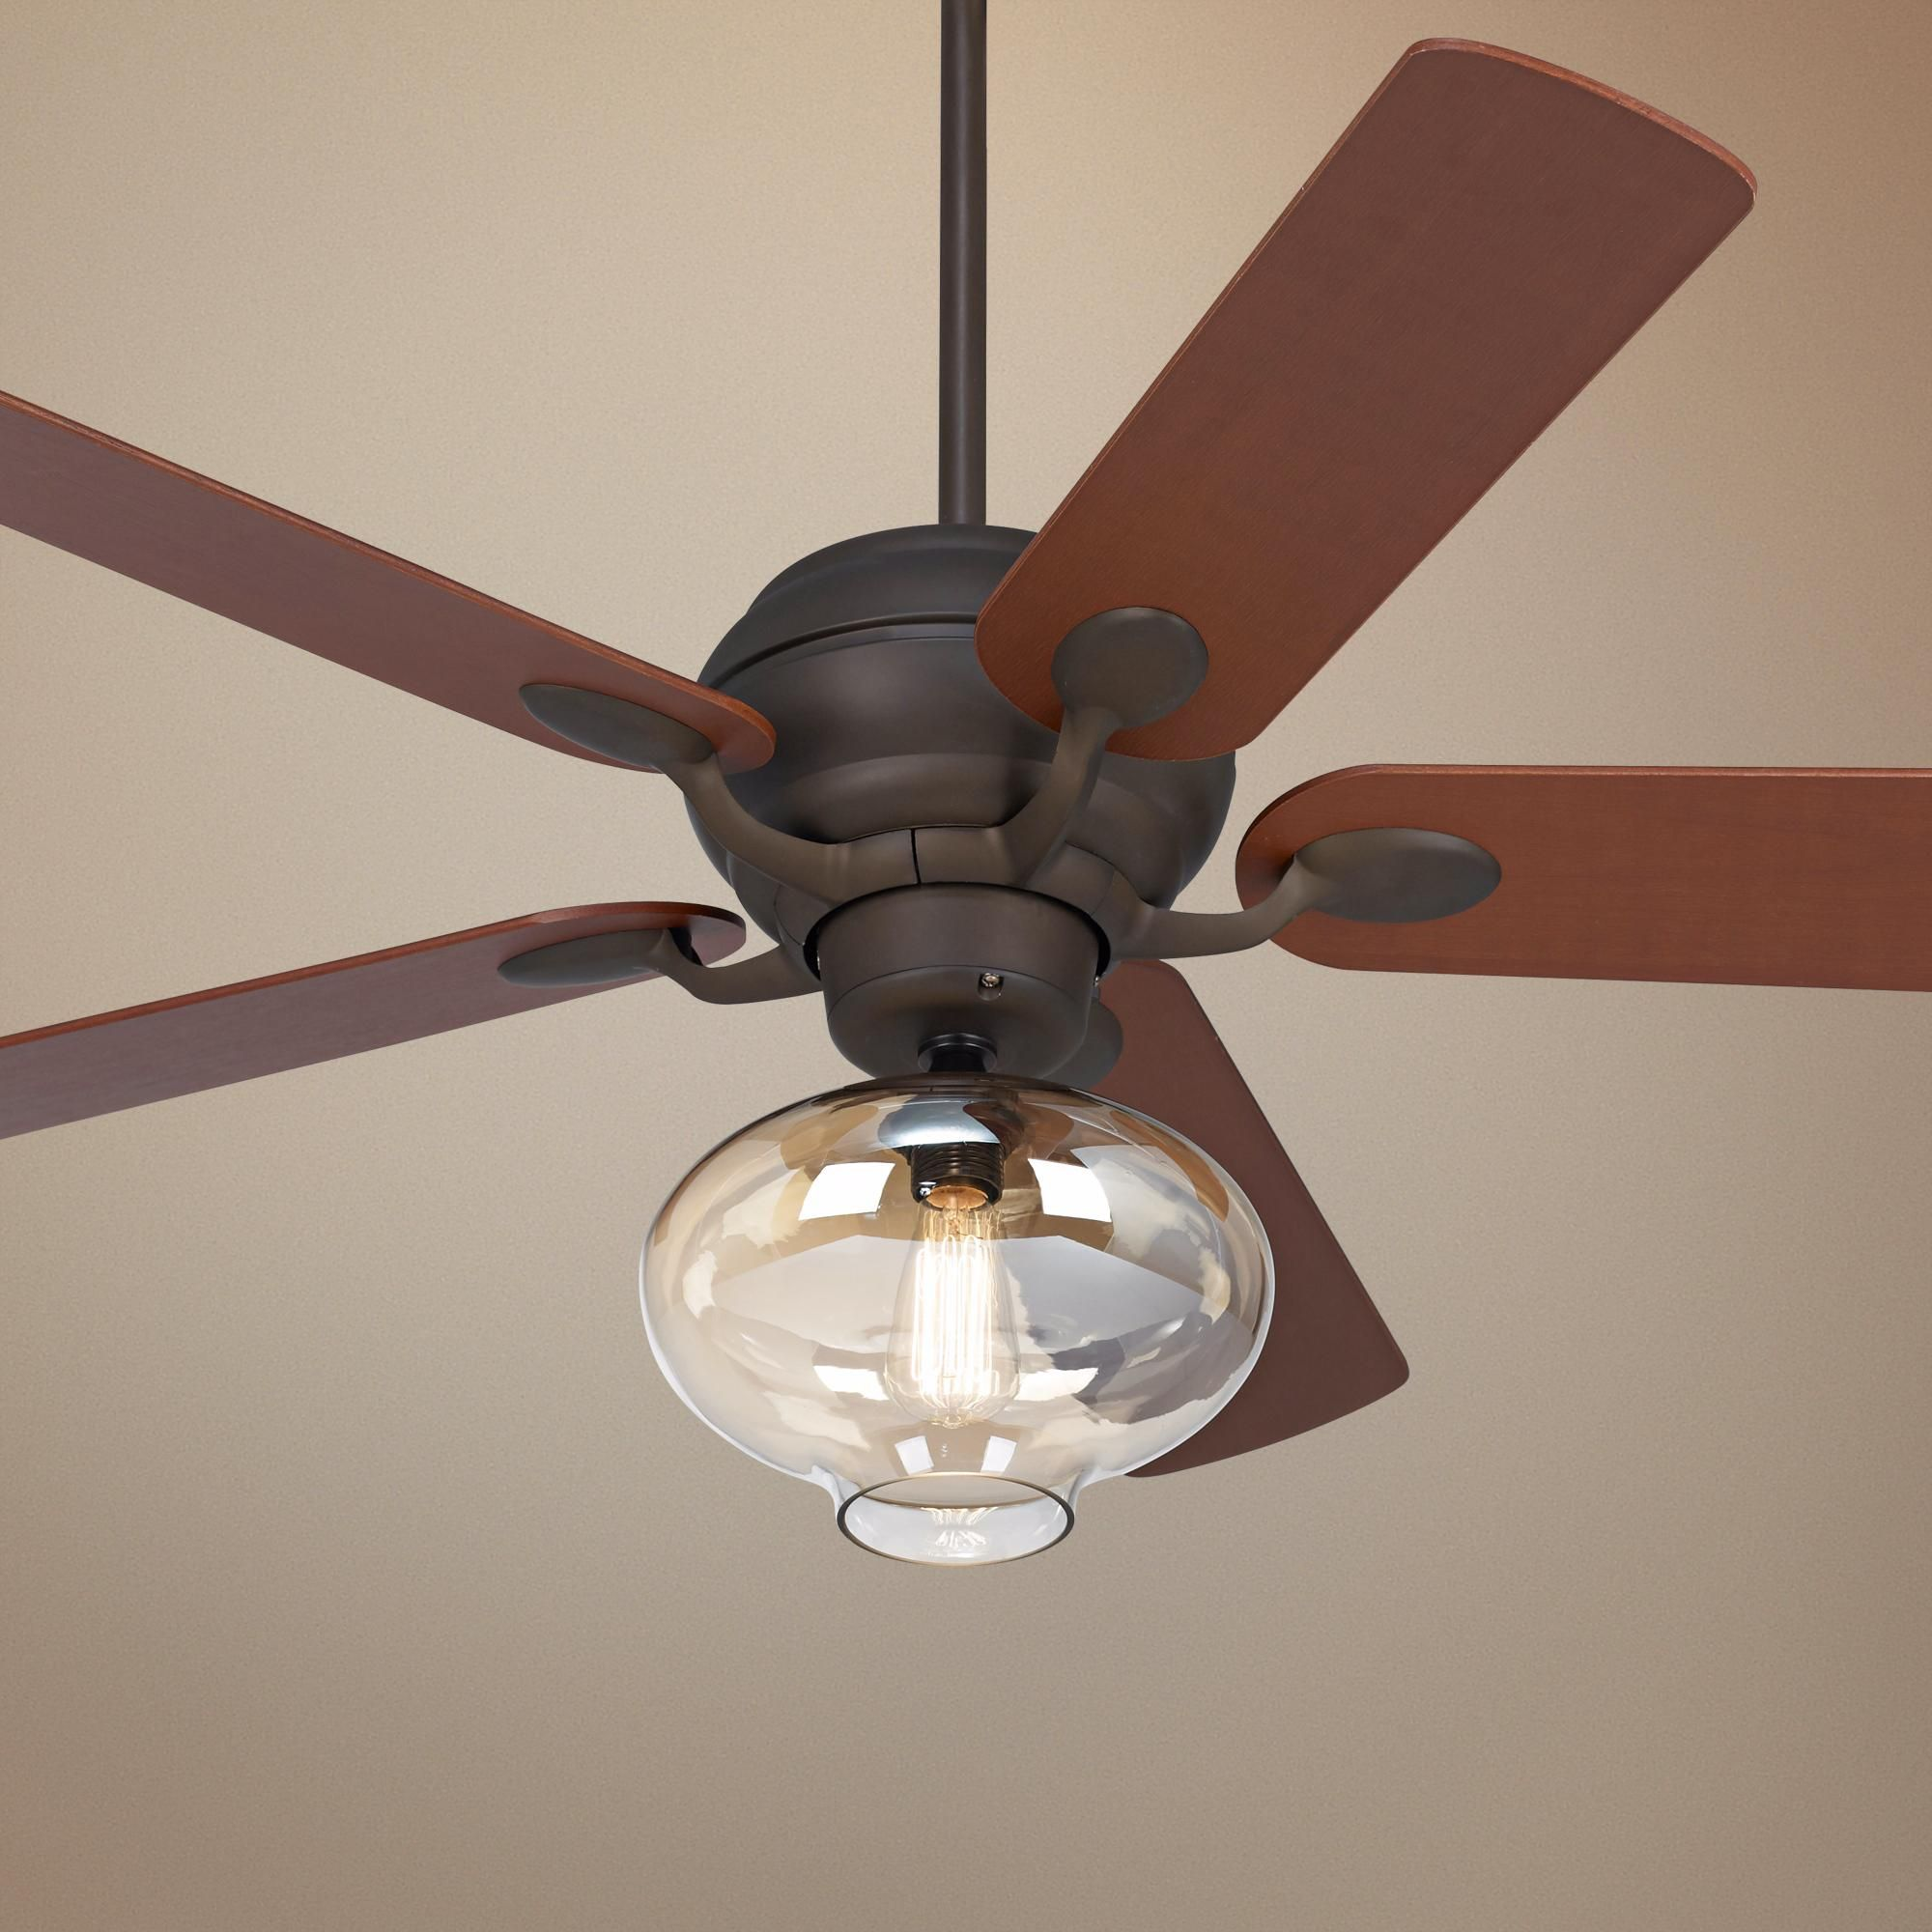 design oil bronze combination kit combo modern white lighting ceiling lowes chandelier ideas depot rubbed kitchen crystal light gallery surprising fan home beautiful